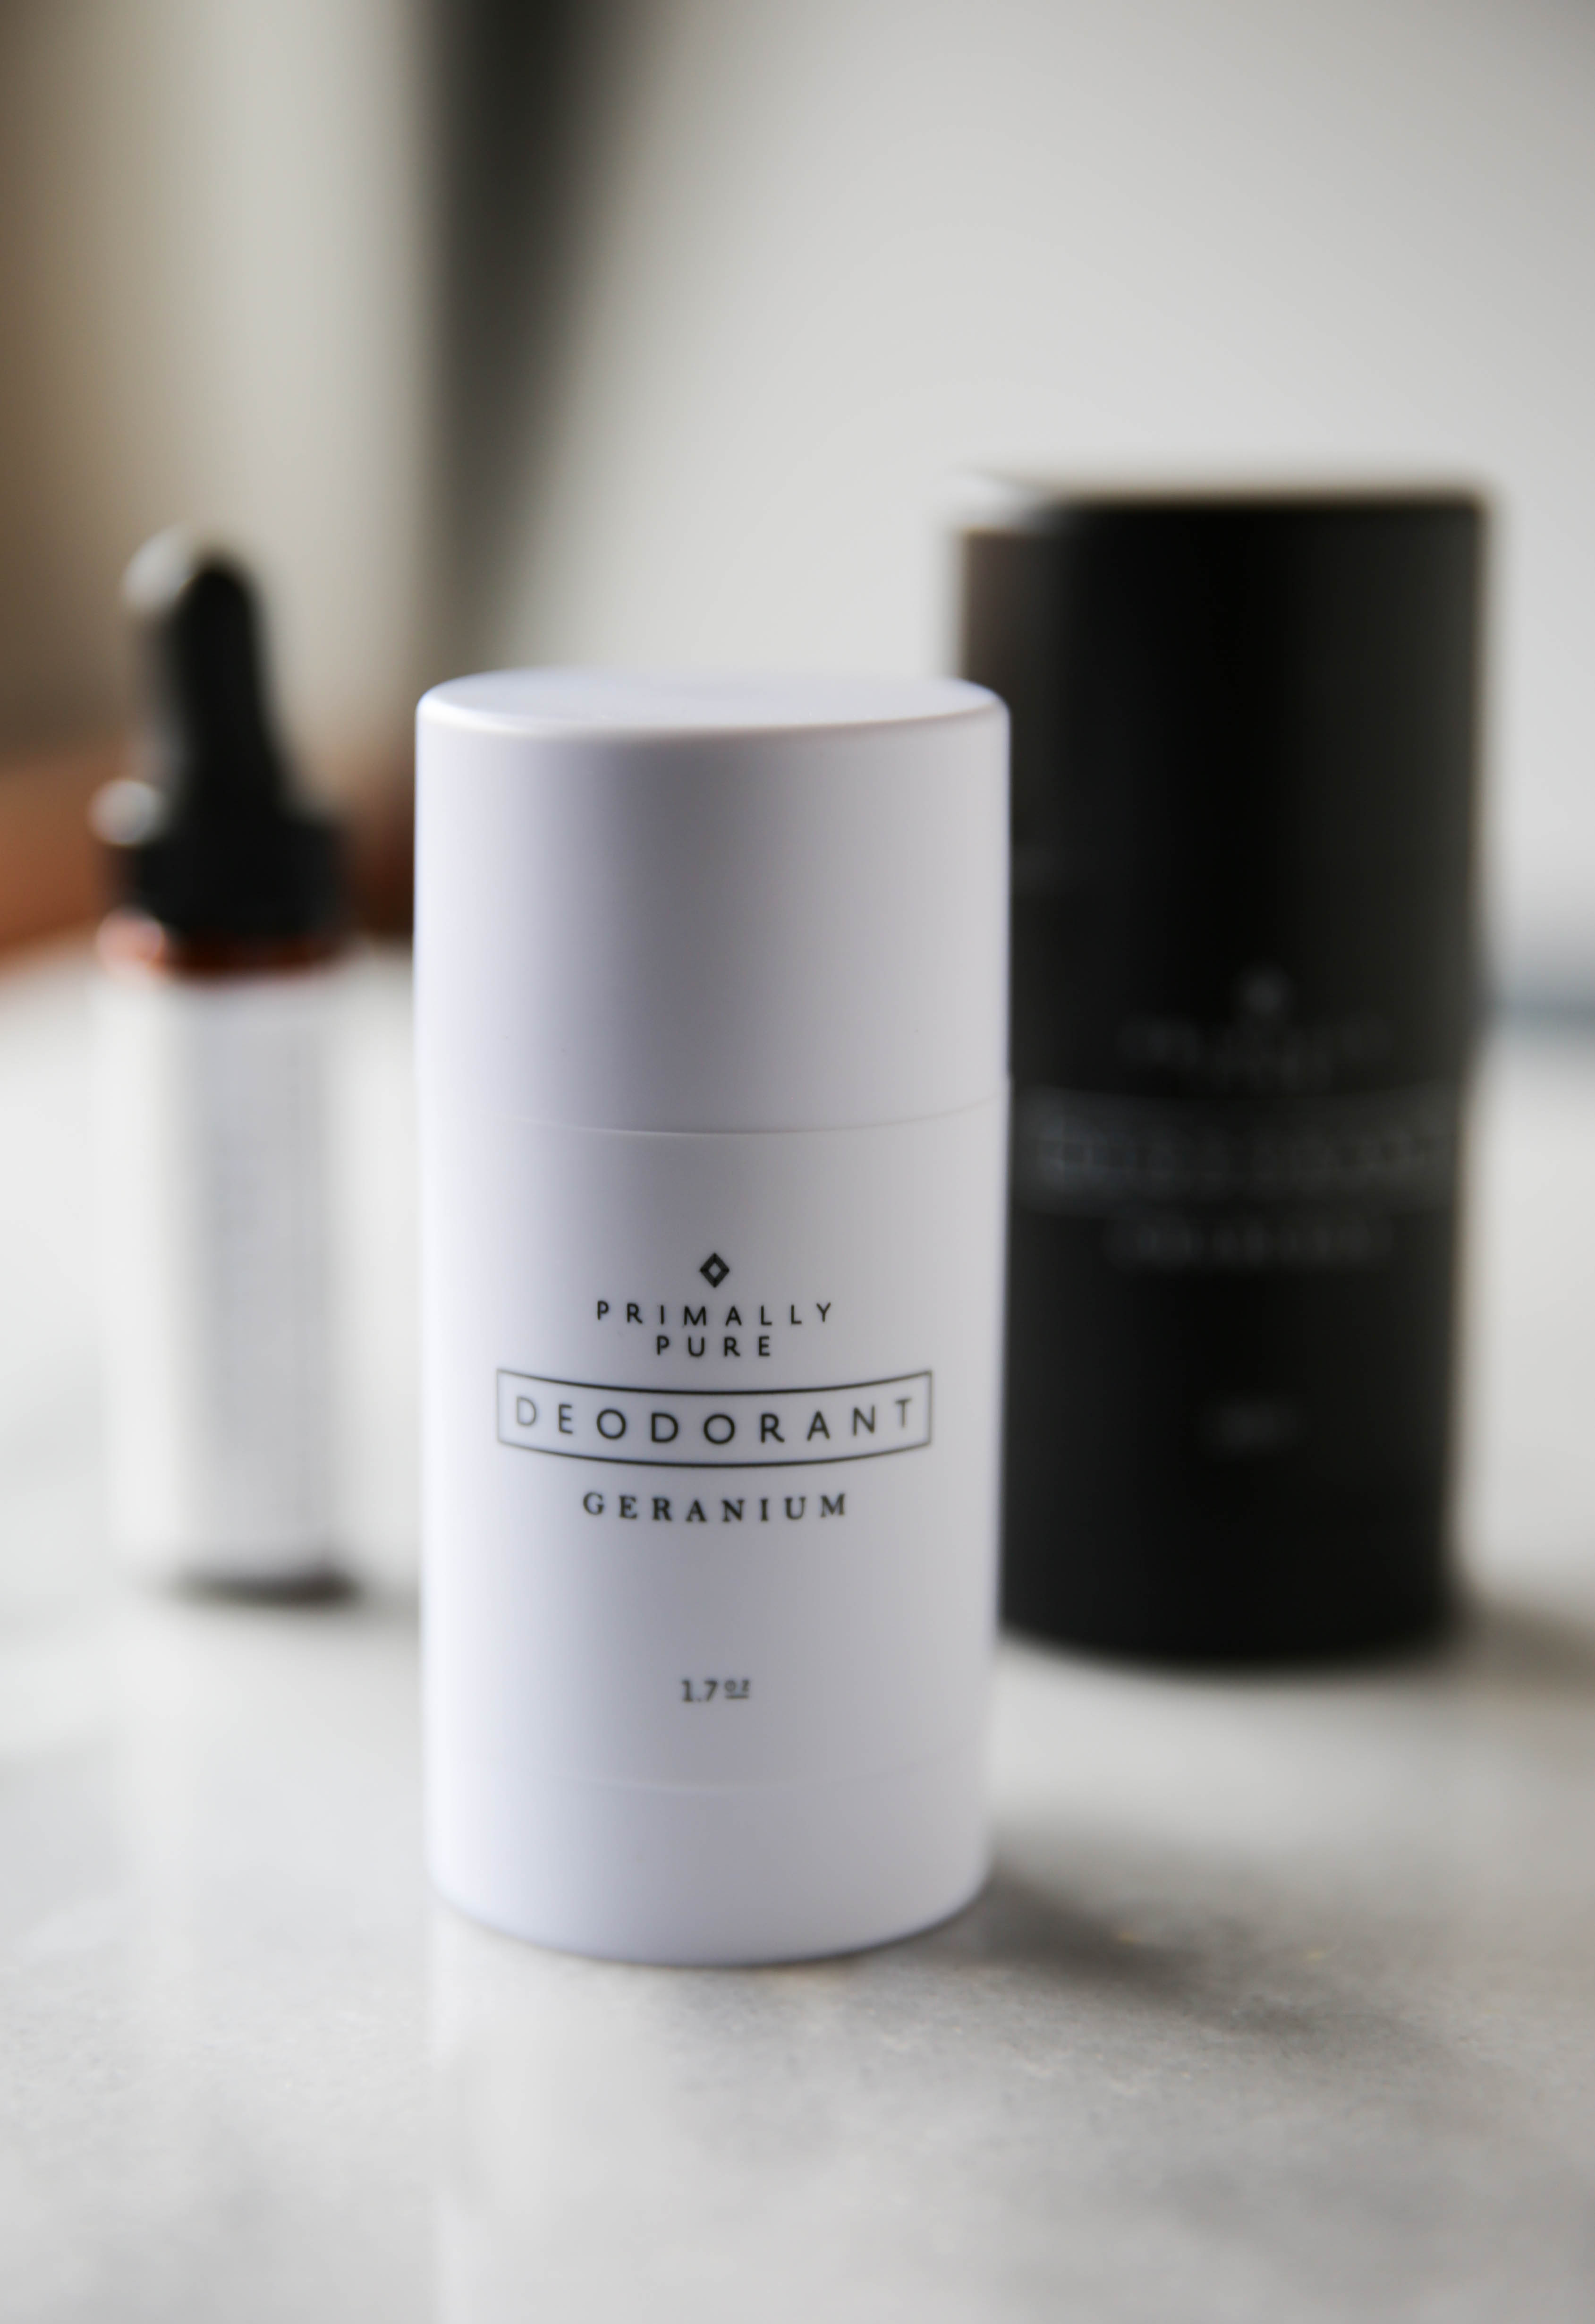 PaleOMG - NEW Charcoal Deodorant (and a face serum that is magical!)